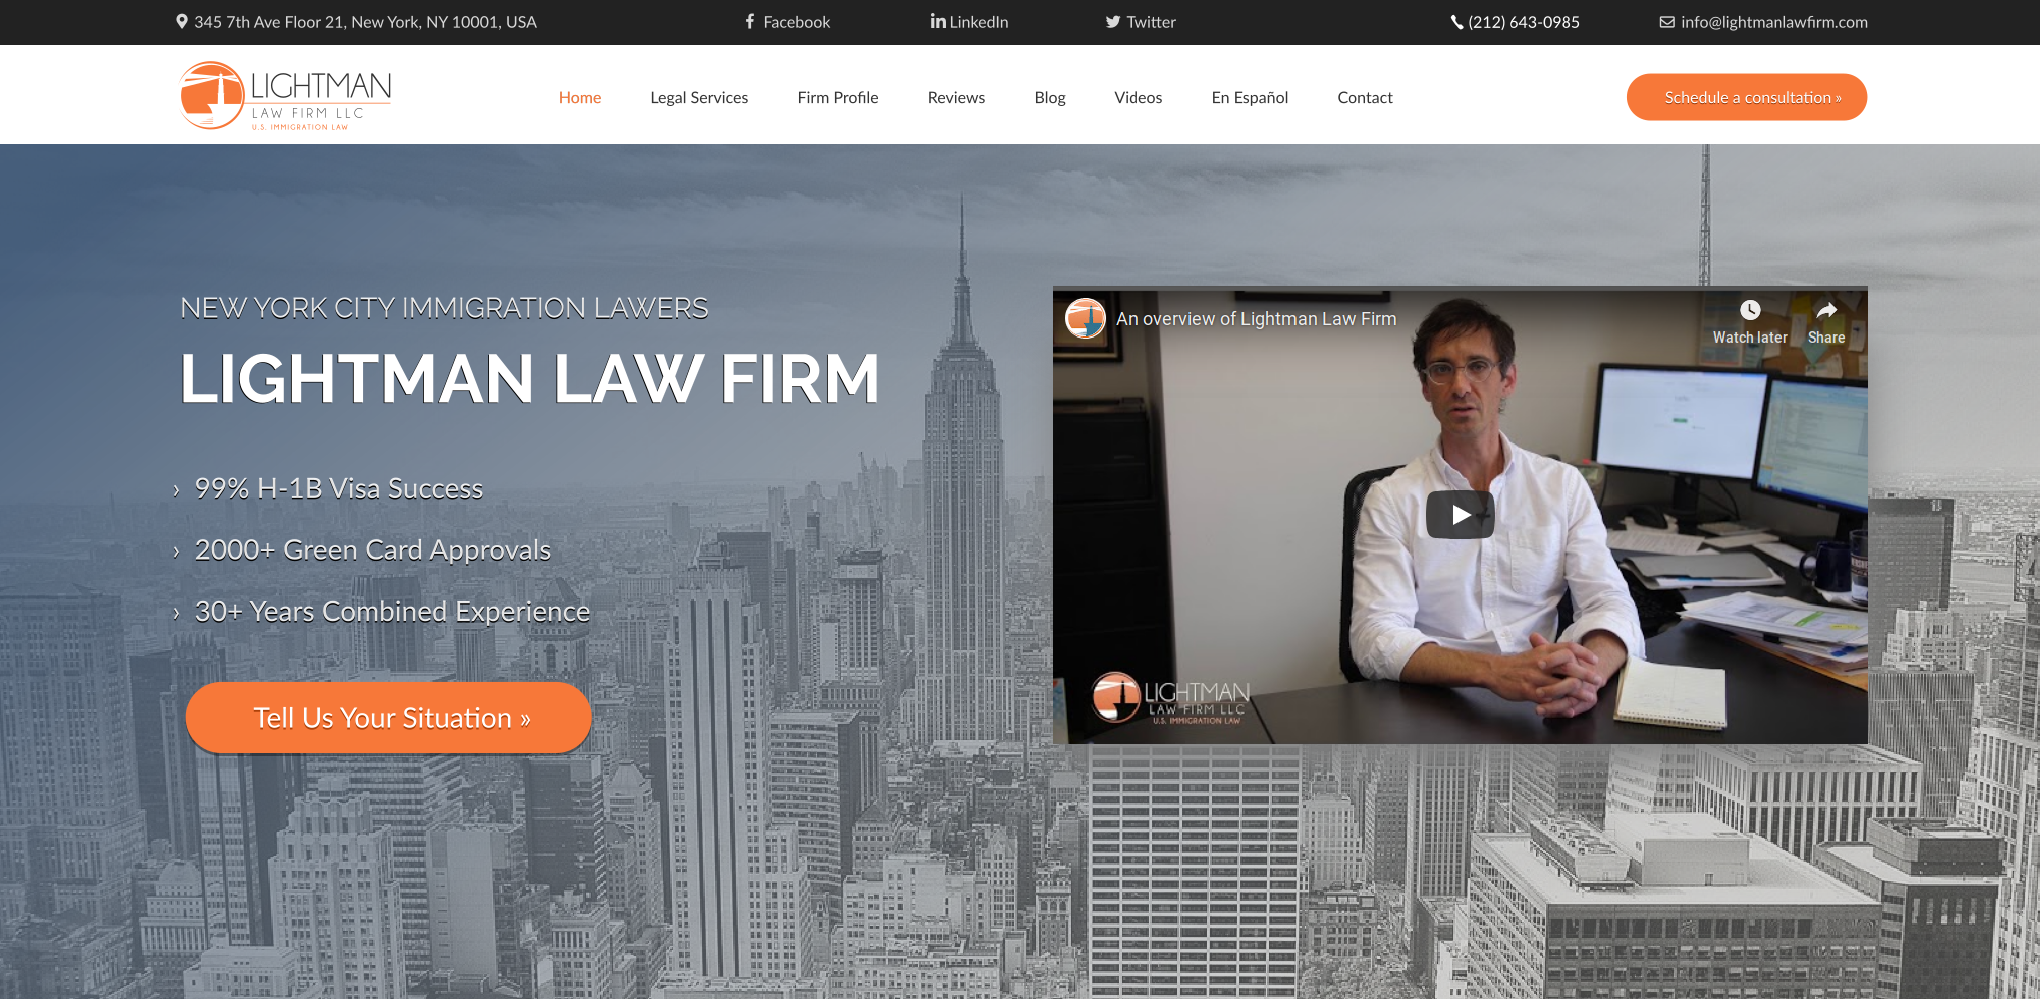 Lightman Law Firm